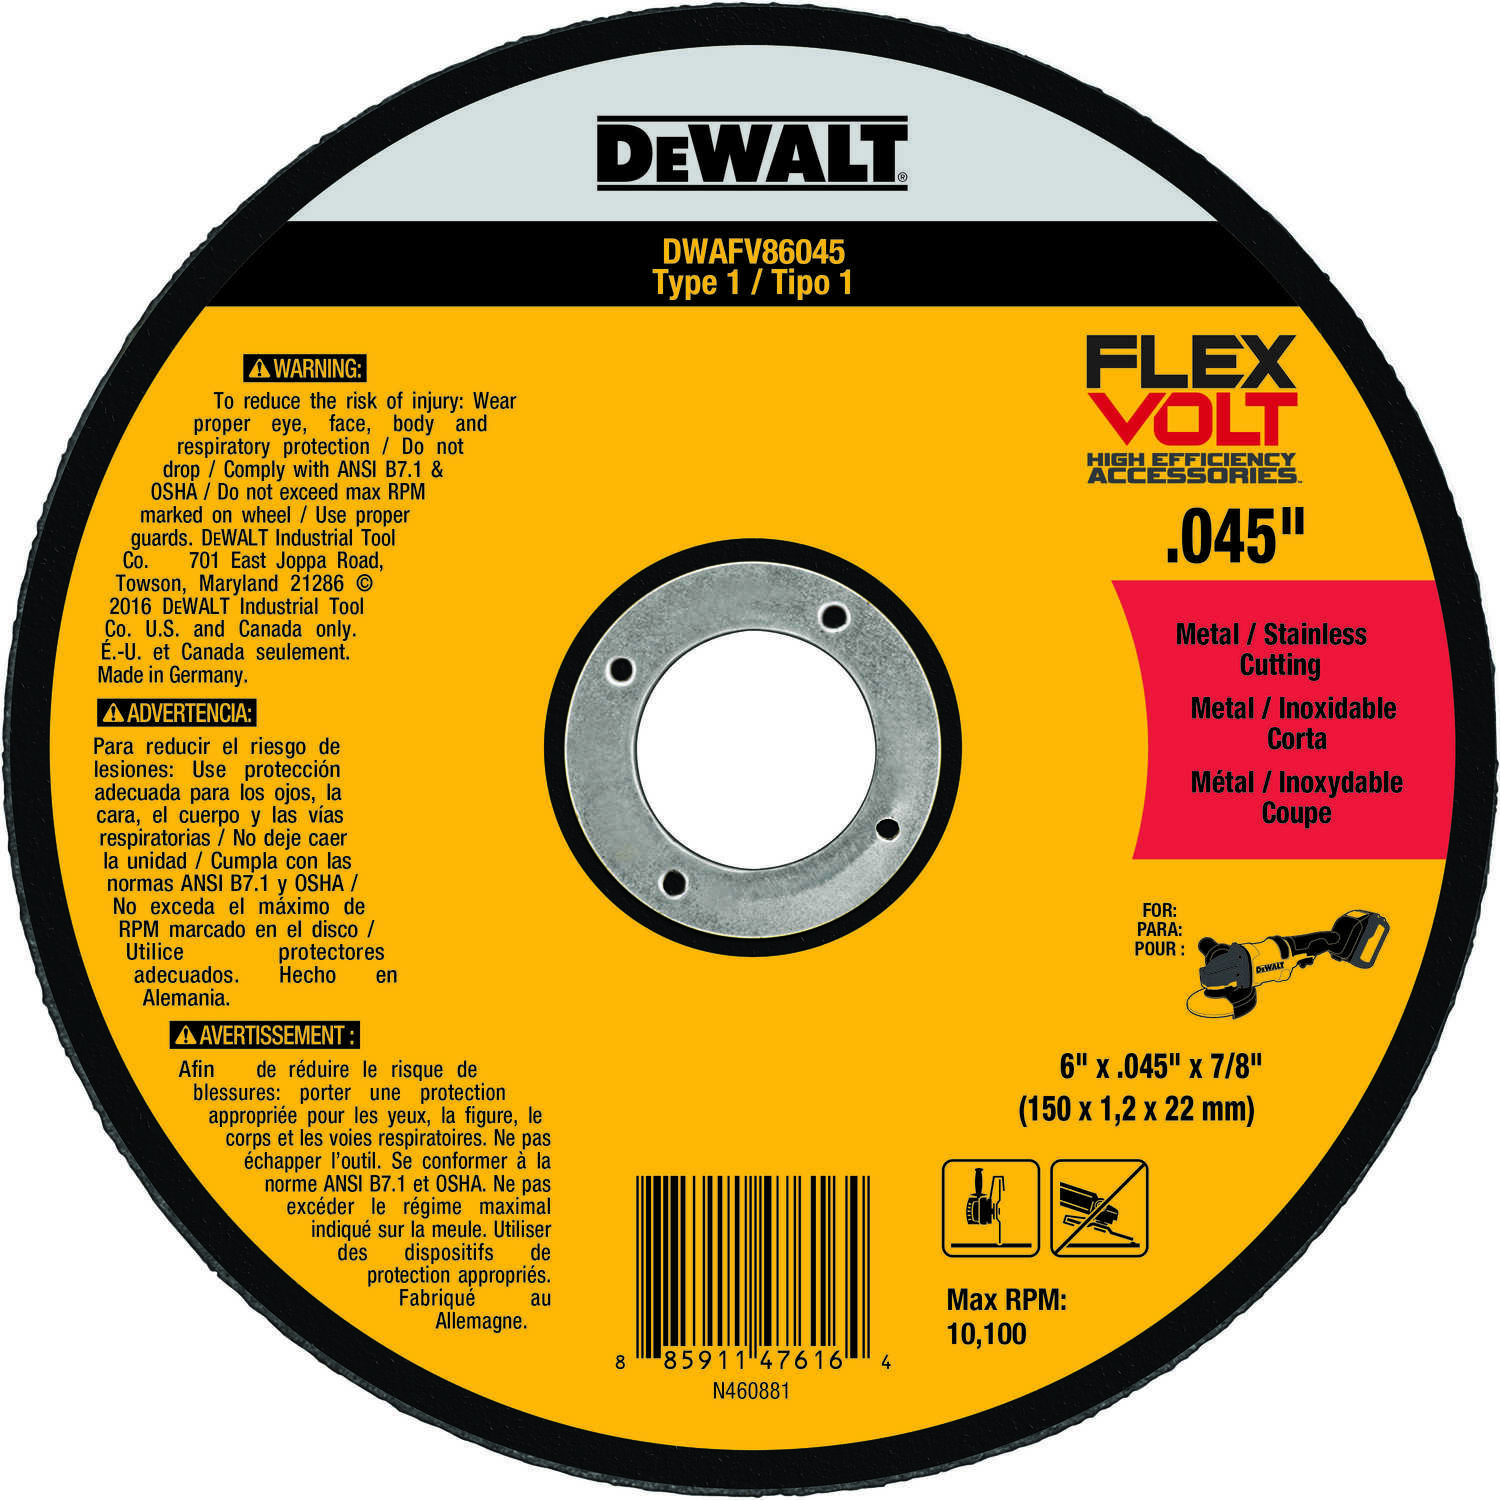 DeWalt  FlexVolt  6 in. 7/8 in. in.  Ceramic  Metal Cutting Wheel  1 pc.